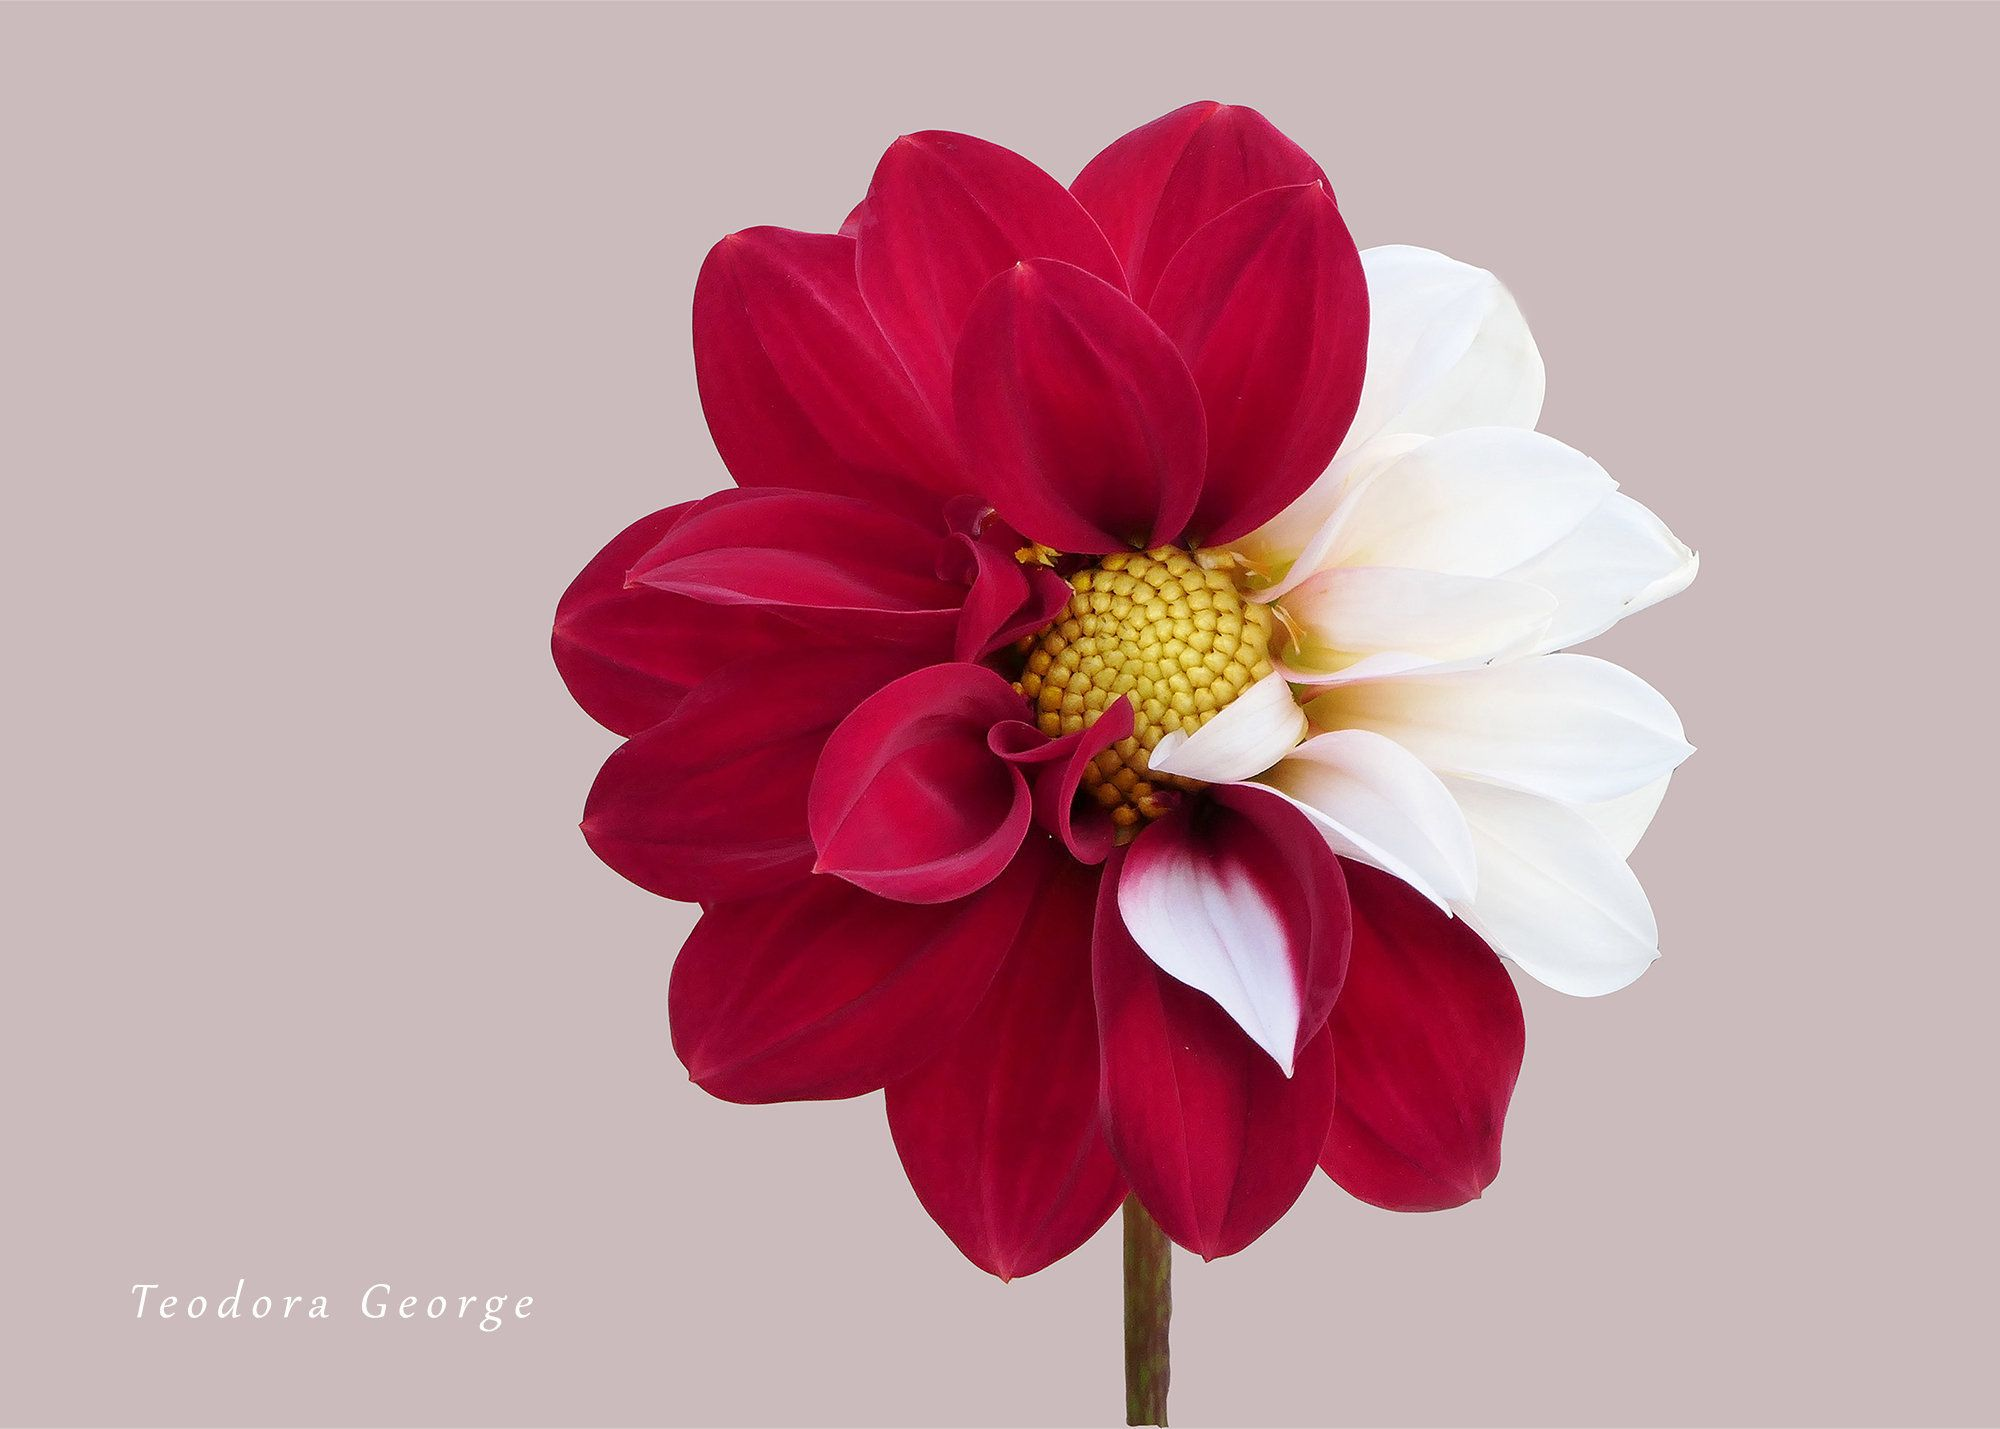 Digital Download Of A Red And White Dahlia Flower Photo Etsy In 2020 Dahlia Flower Flower Photos Flowers Photography